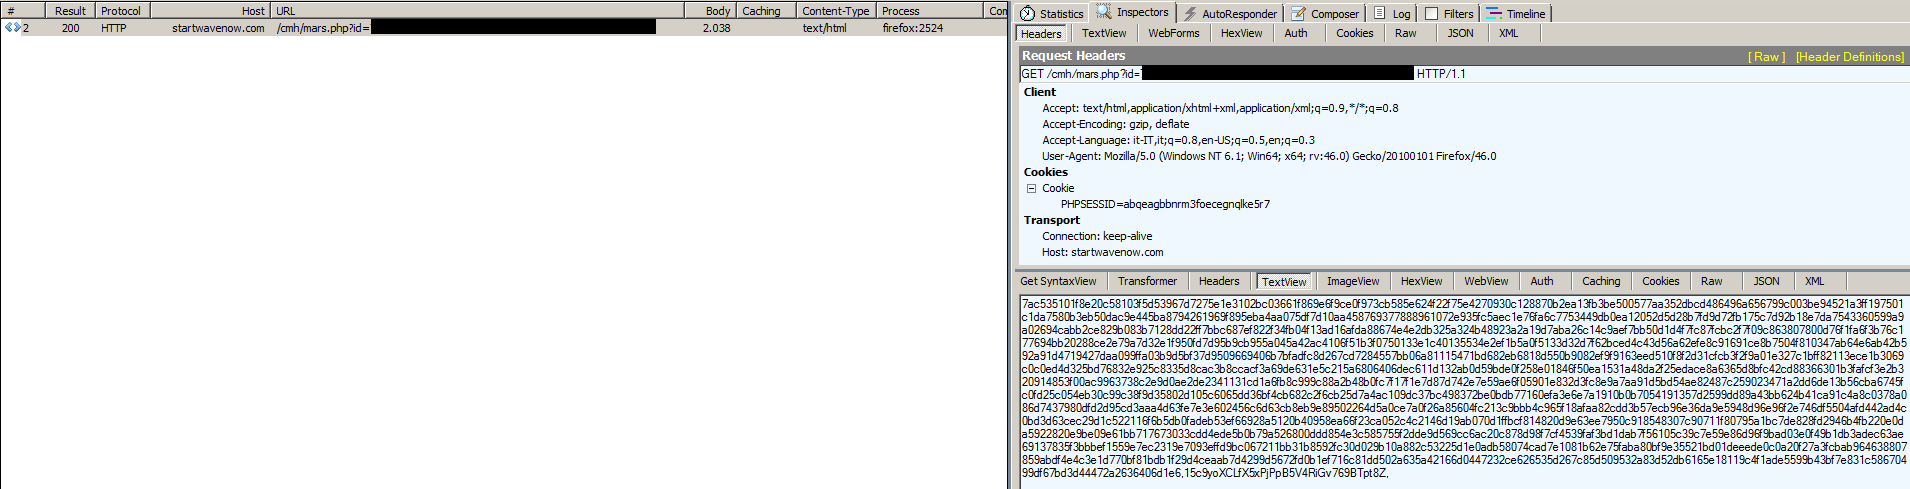 RAA_Ransomware_get_request